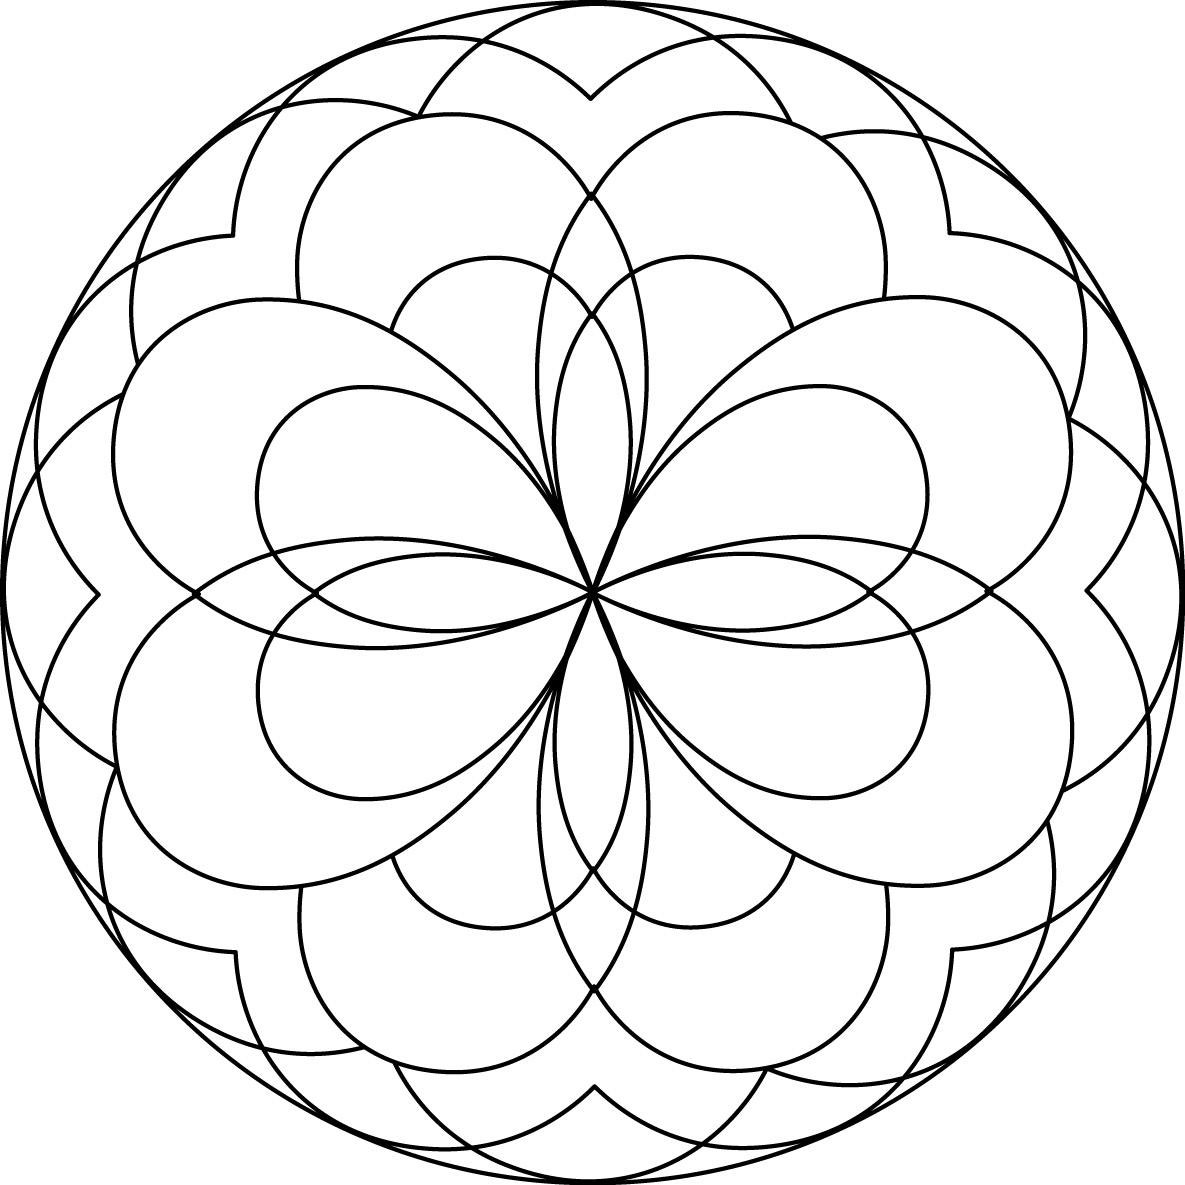 mandala colouring pages for kids free printable mandalas for kids best coloring pages for mandala colouring pages for kids